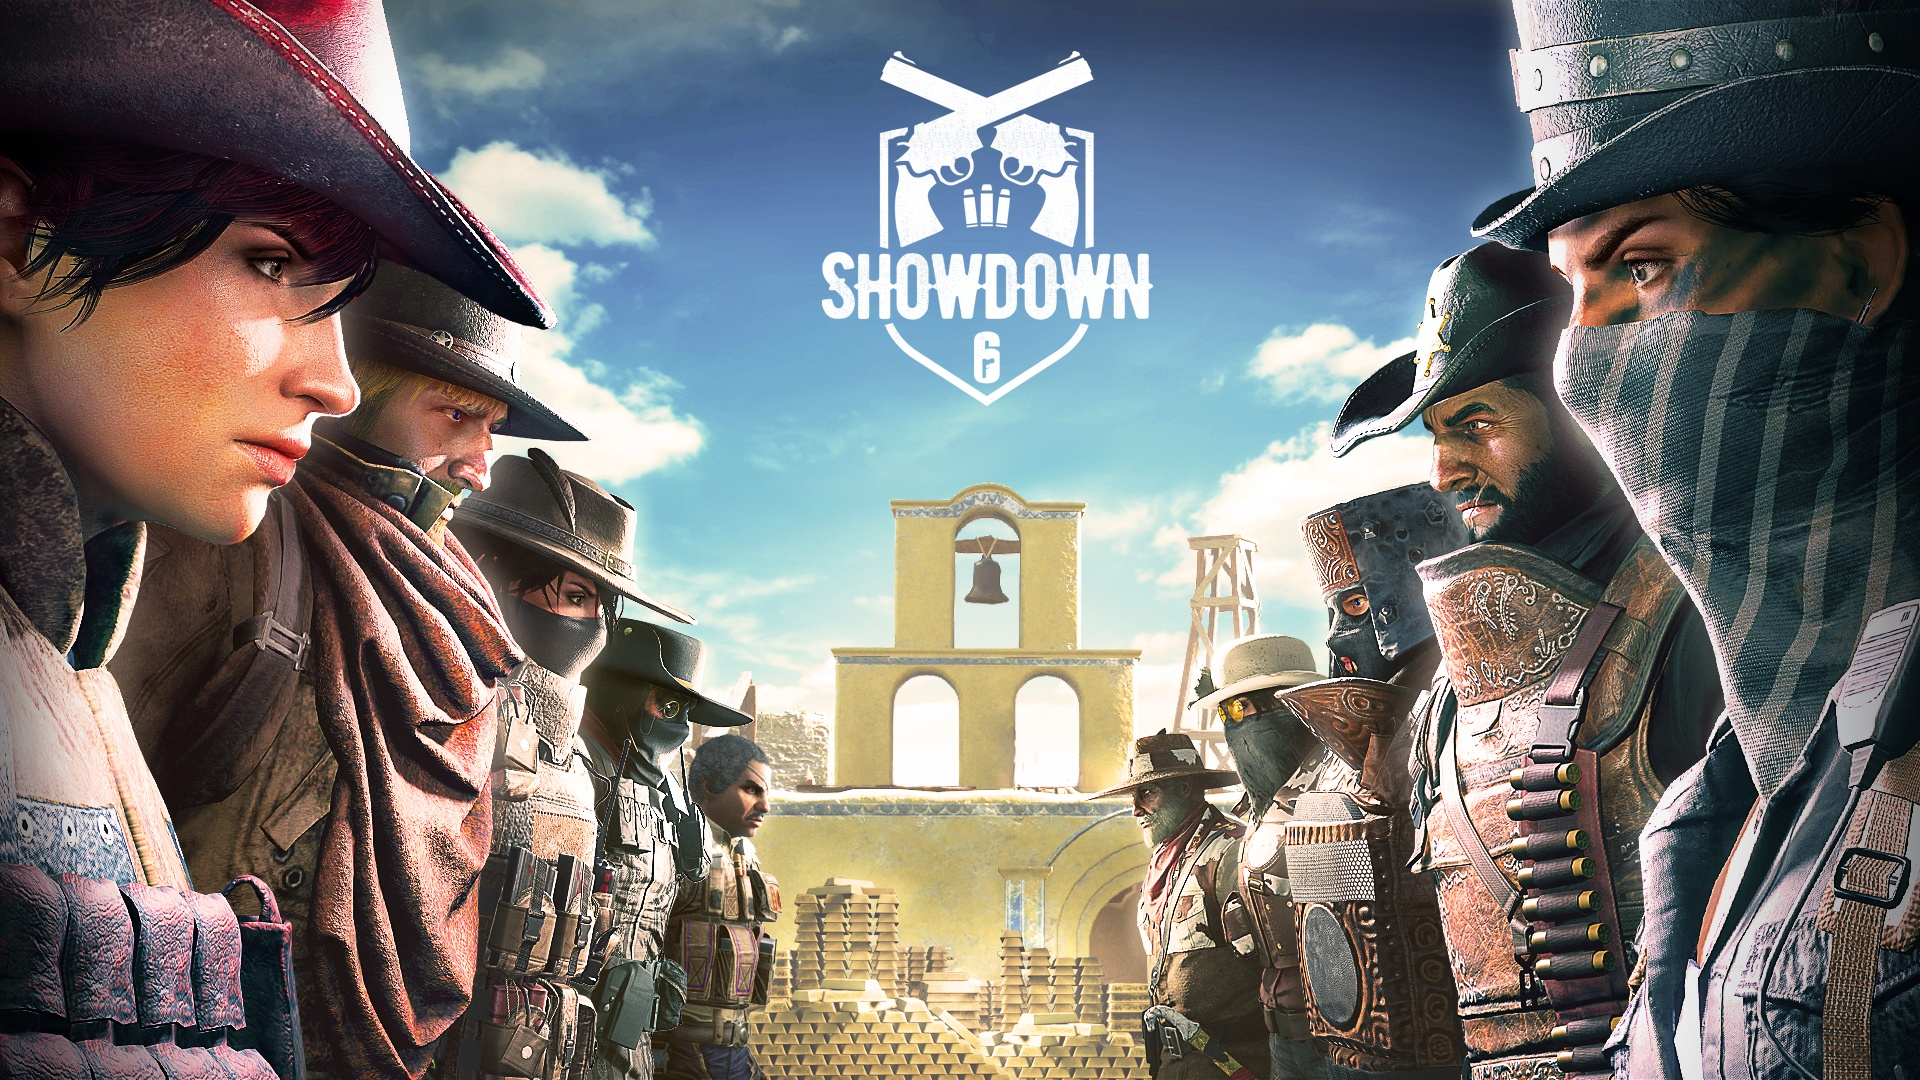 showdown at fort truth in rainbow six siege on xbox one